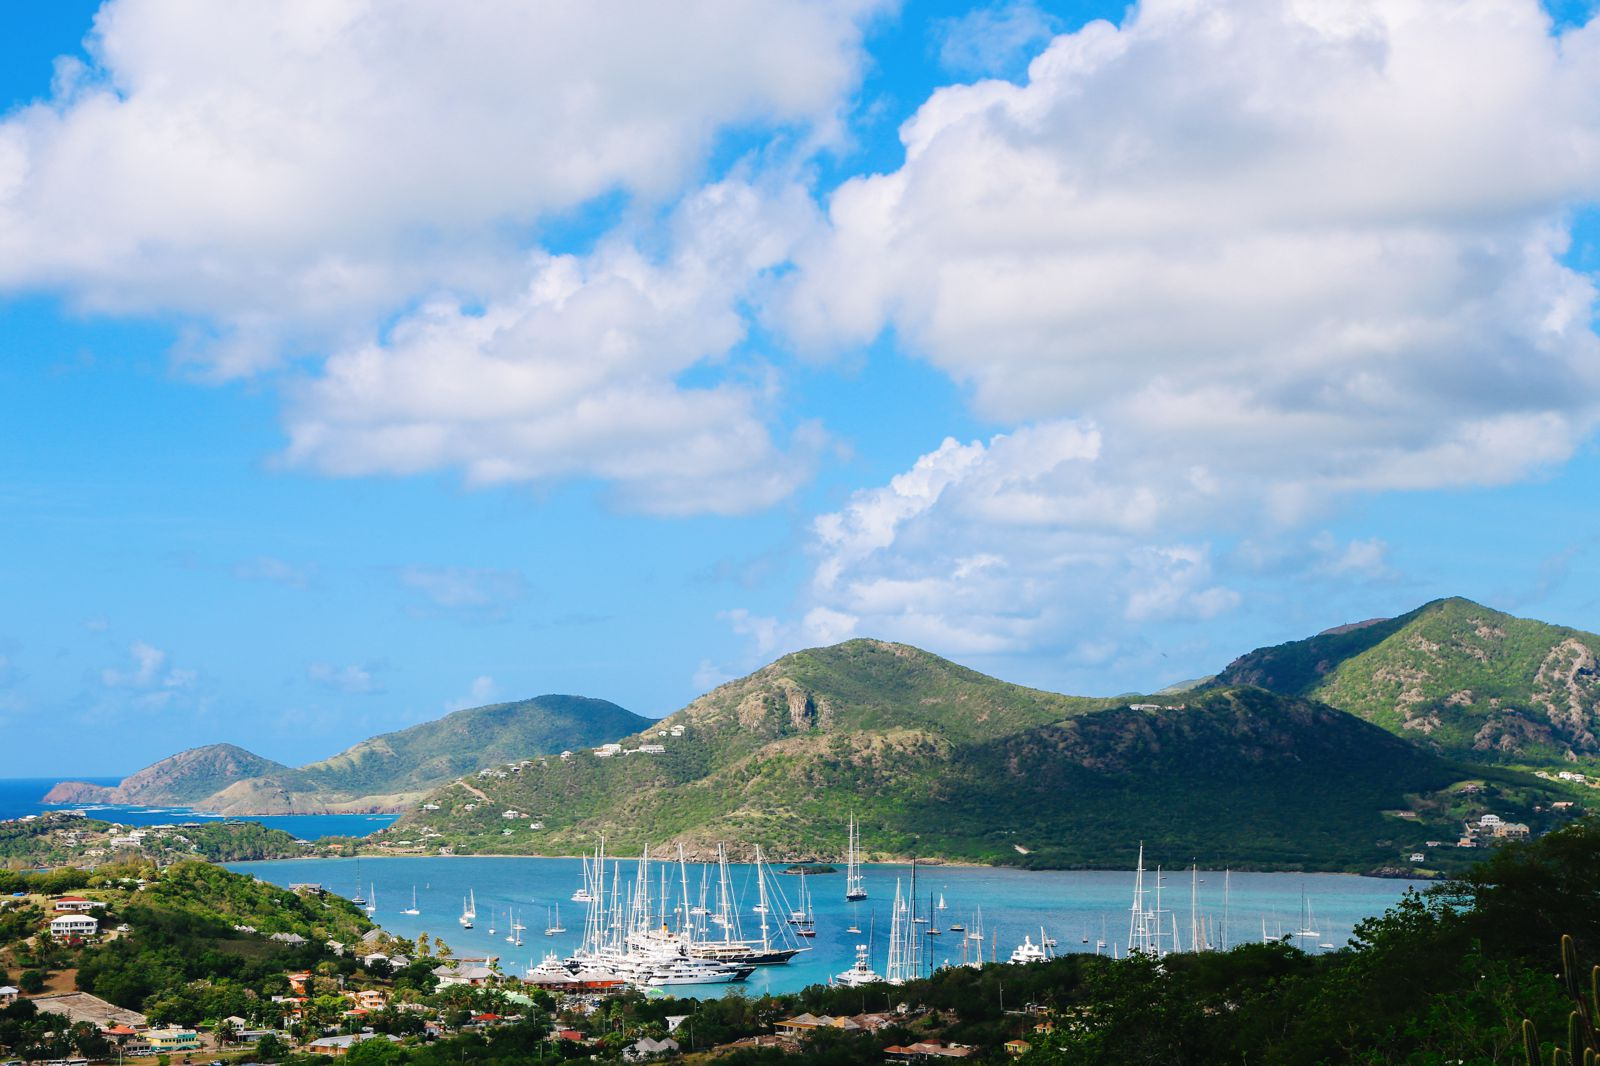 Exploring The Caribbean Island Of Antigua By Land - Part 1 (36)